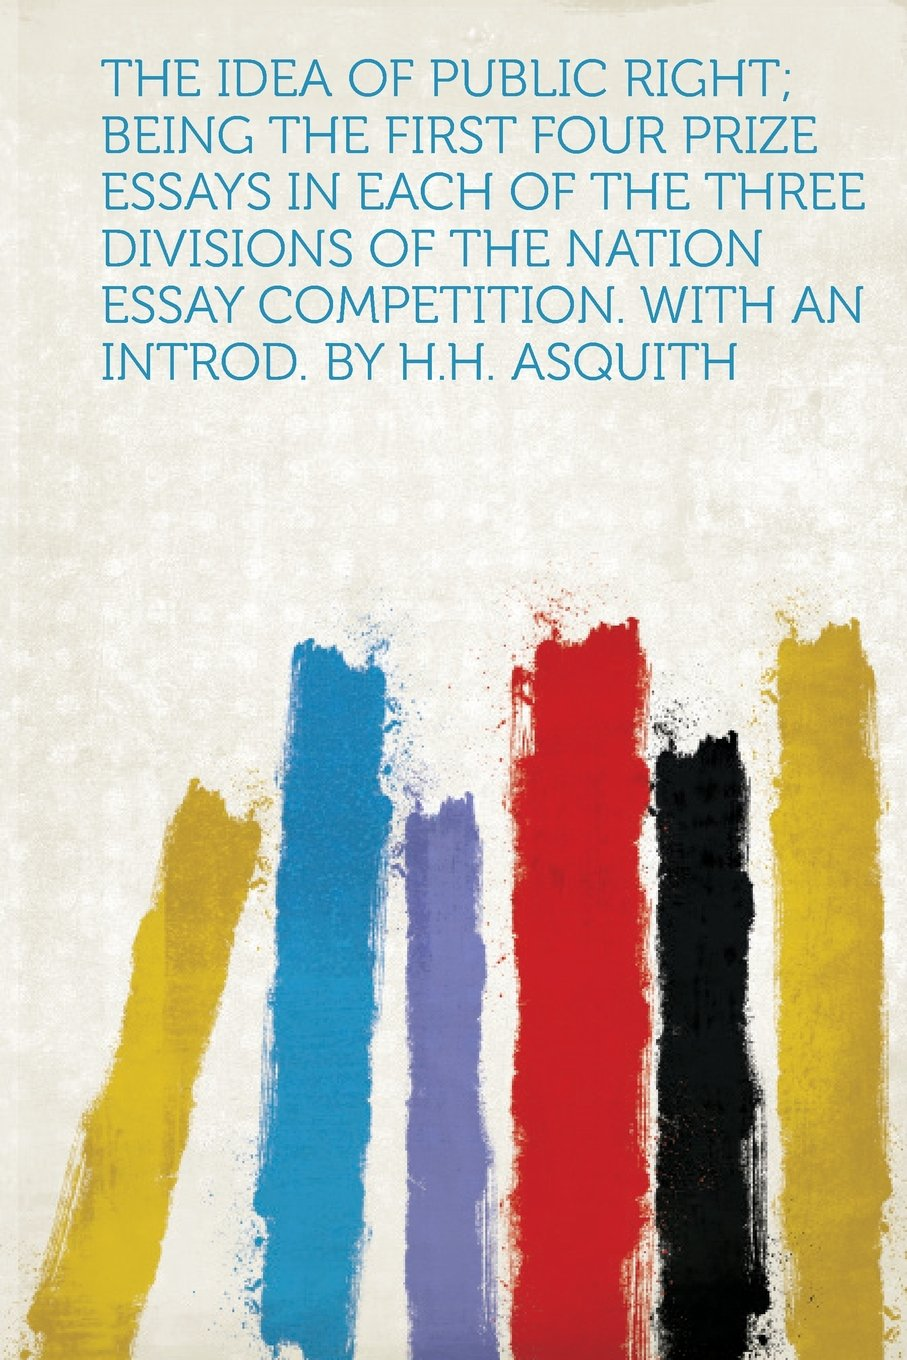 Download The Idea of Public Right; Being the First Four Prize Essays in Each of the Three Divisions of the Nation Essay Competition. with an Introd. by H.H. as PDF